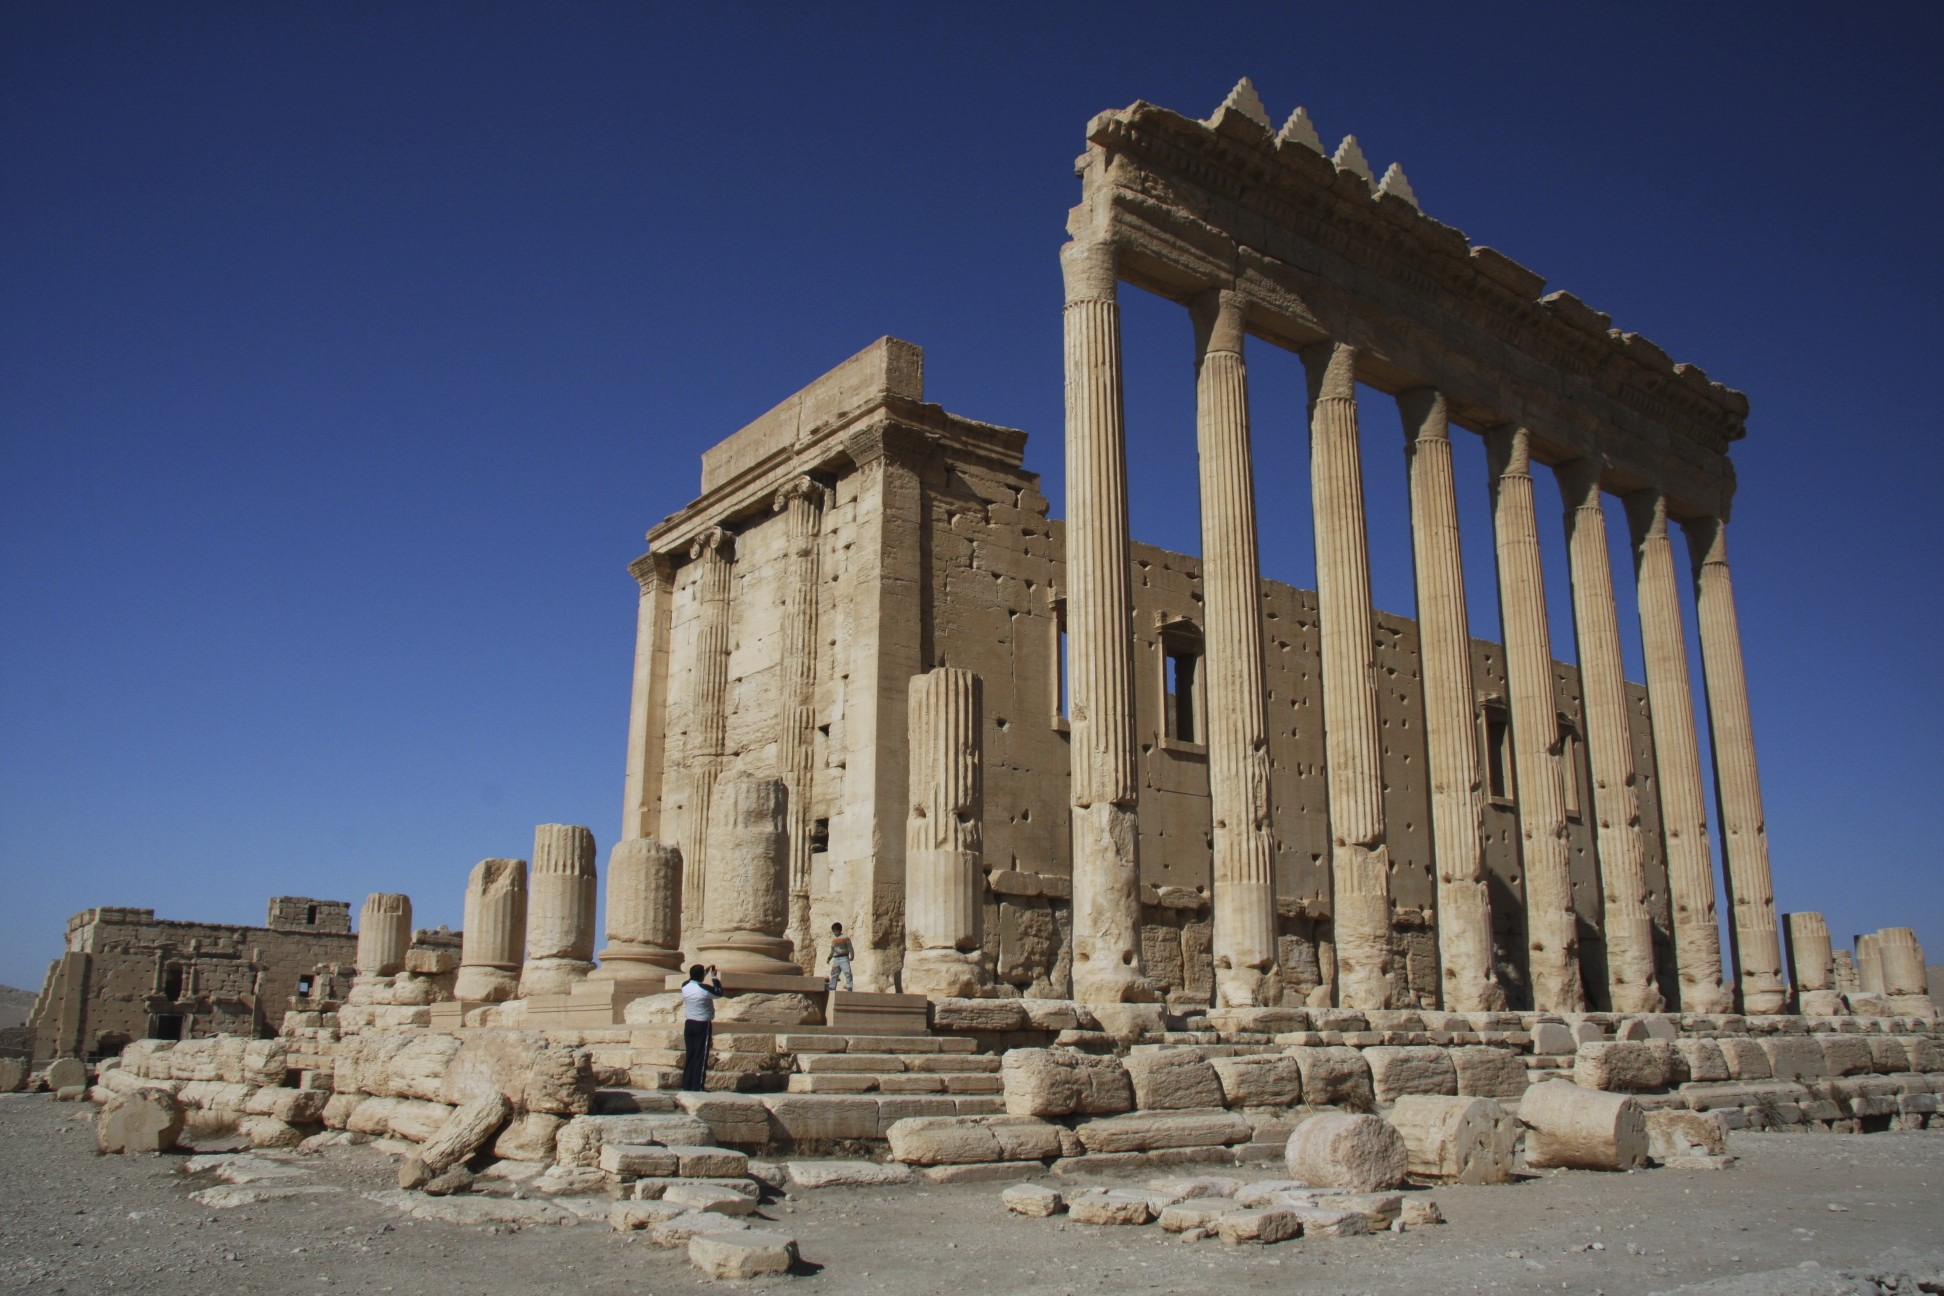 The Temple of Bel built in 32 AD and destroyed in 2015